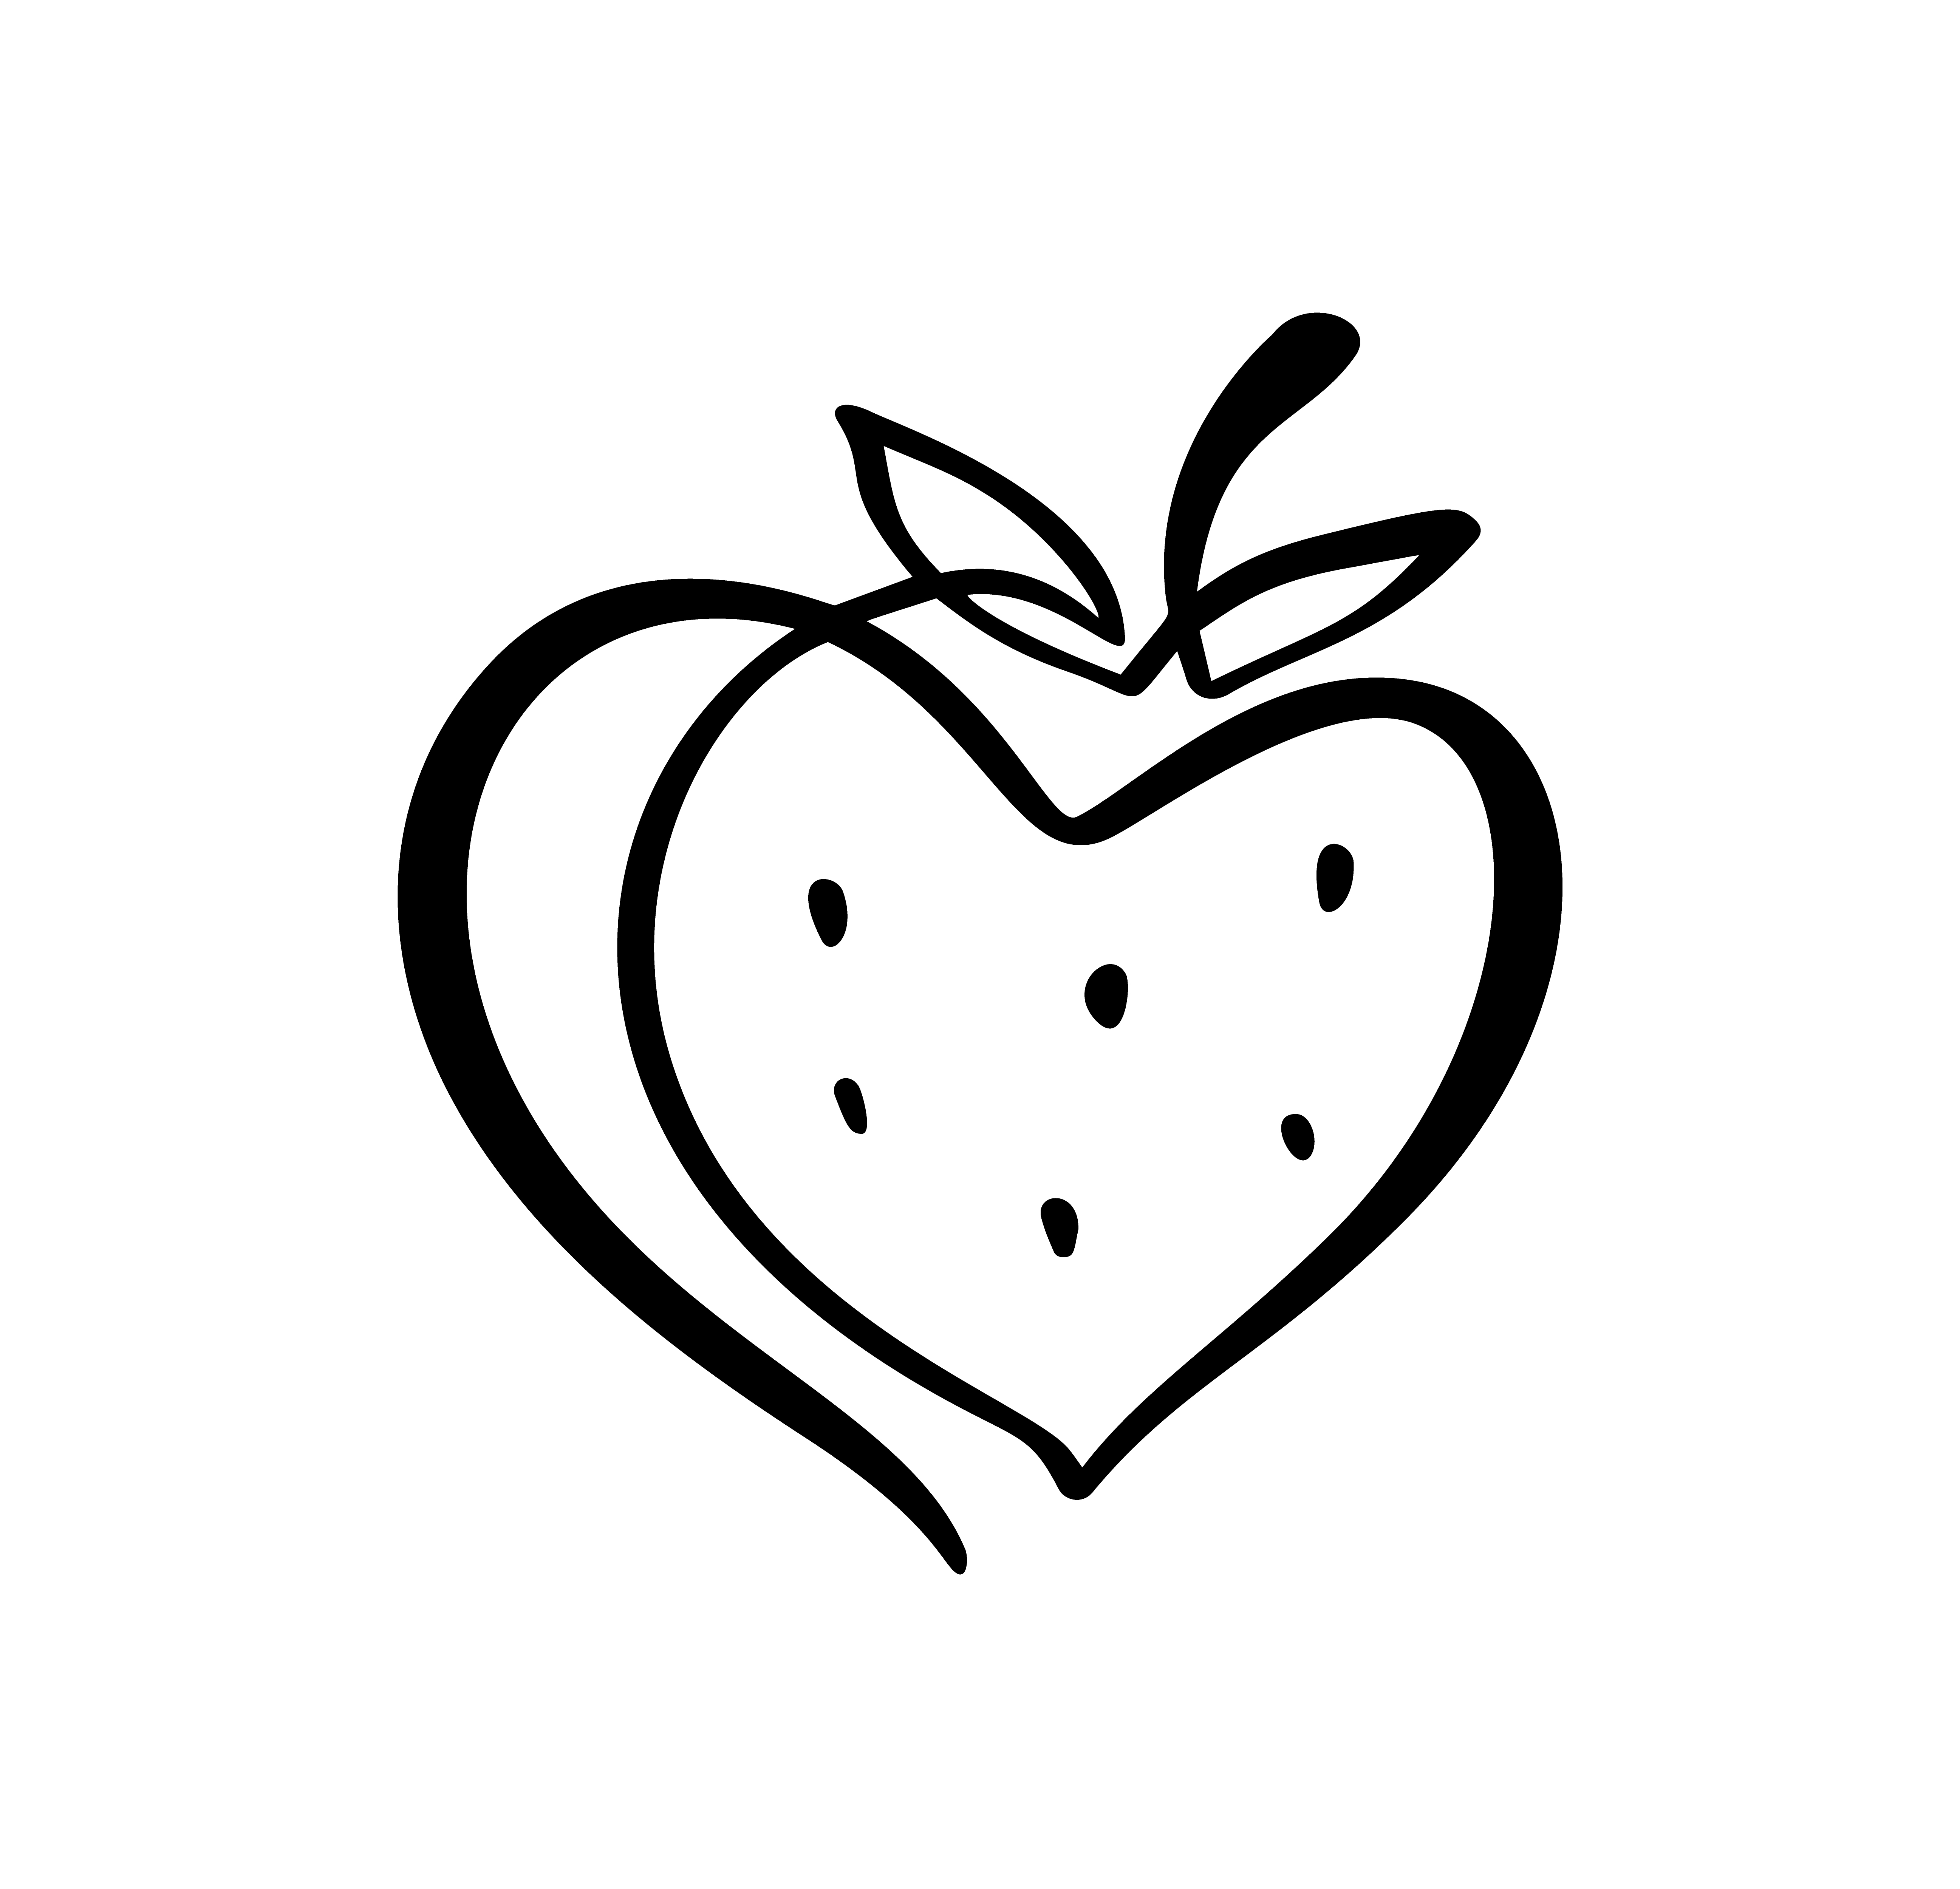 strawberry printable strawberry coloring pages downloadable and printable images strawberry printable